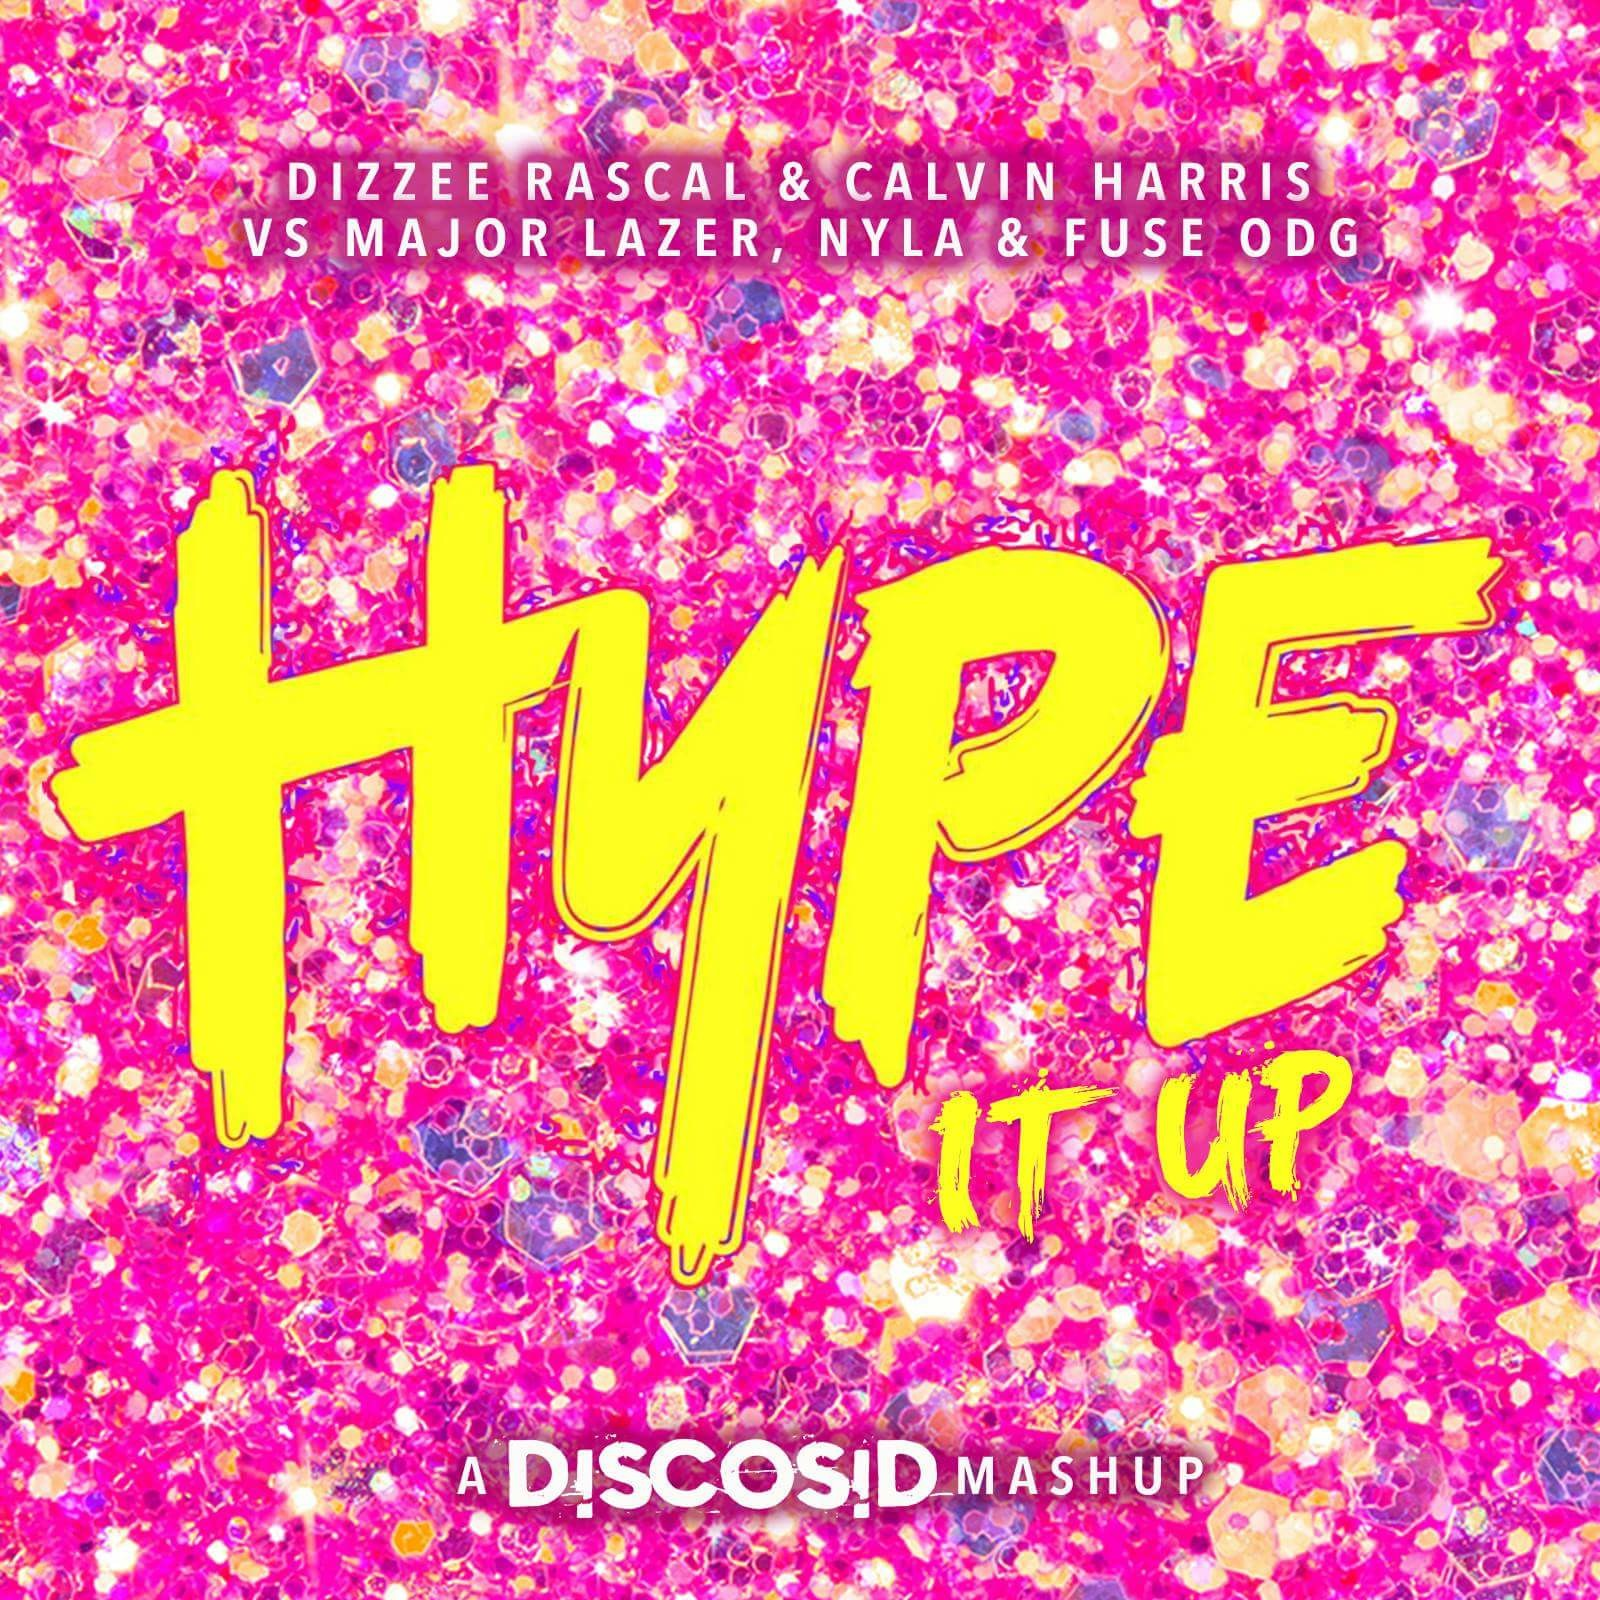 Dizzee Rascal & Calvin Harris Vs Major Lazer, Nyla & Fuse ODG - Hype It Up (Discosid Mashup)